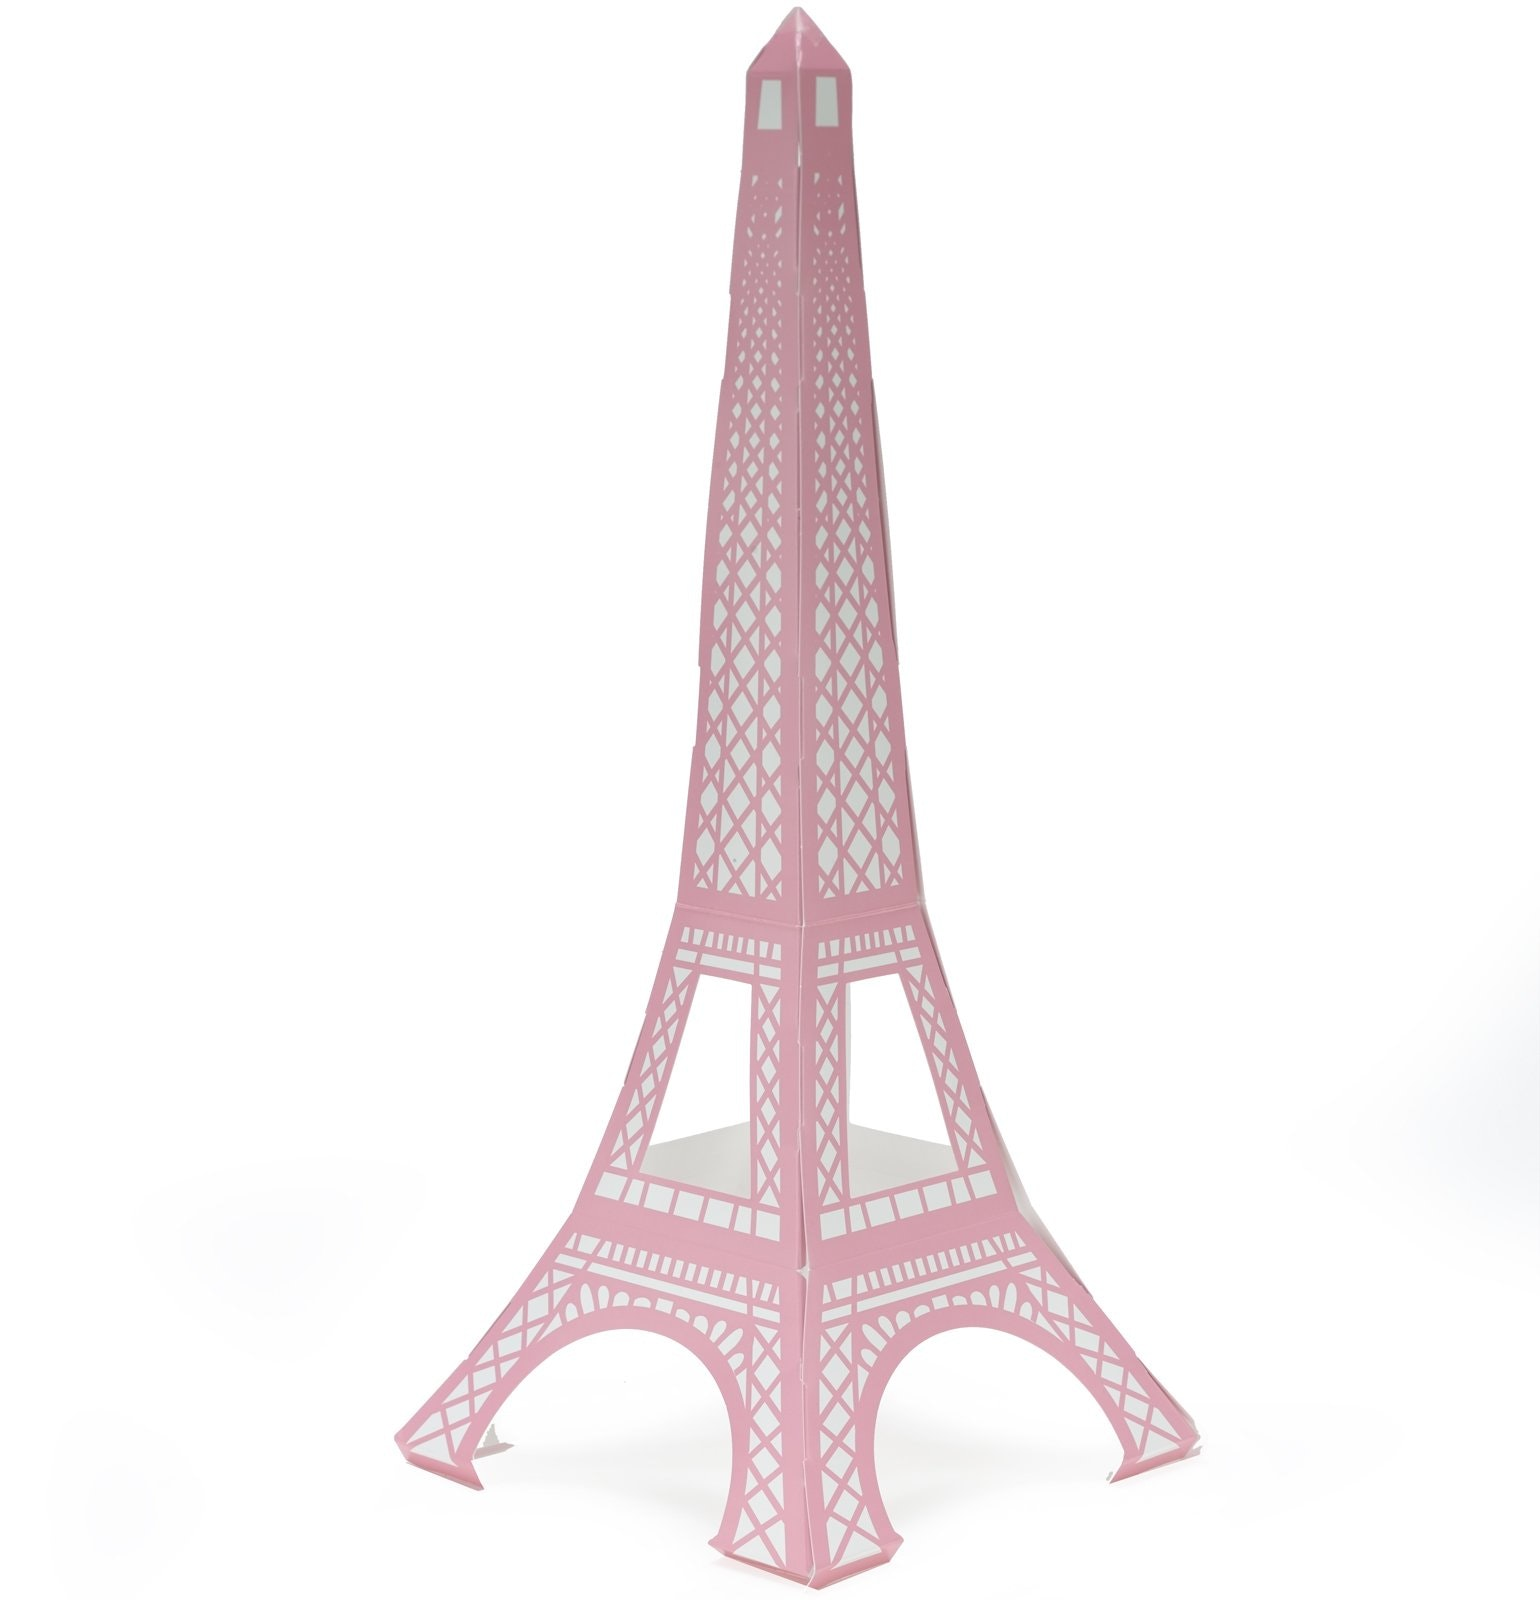 Paris Tower Centerpieces | Eiffel Tower Centerpieces | Feather Eiffel Tower Centerpieces